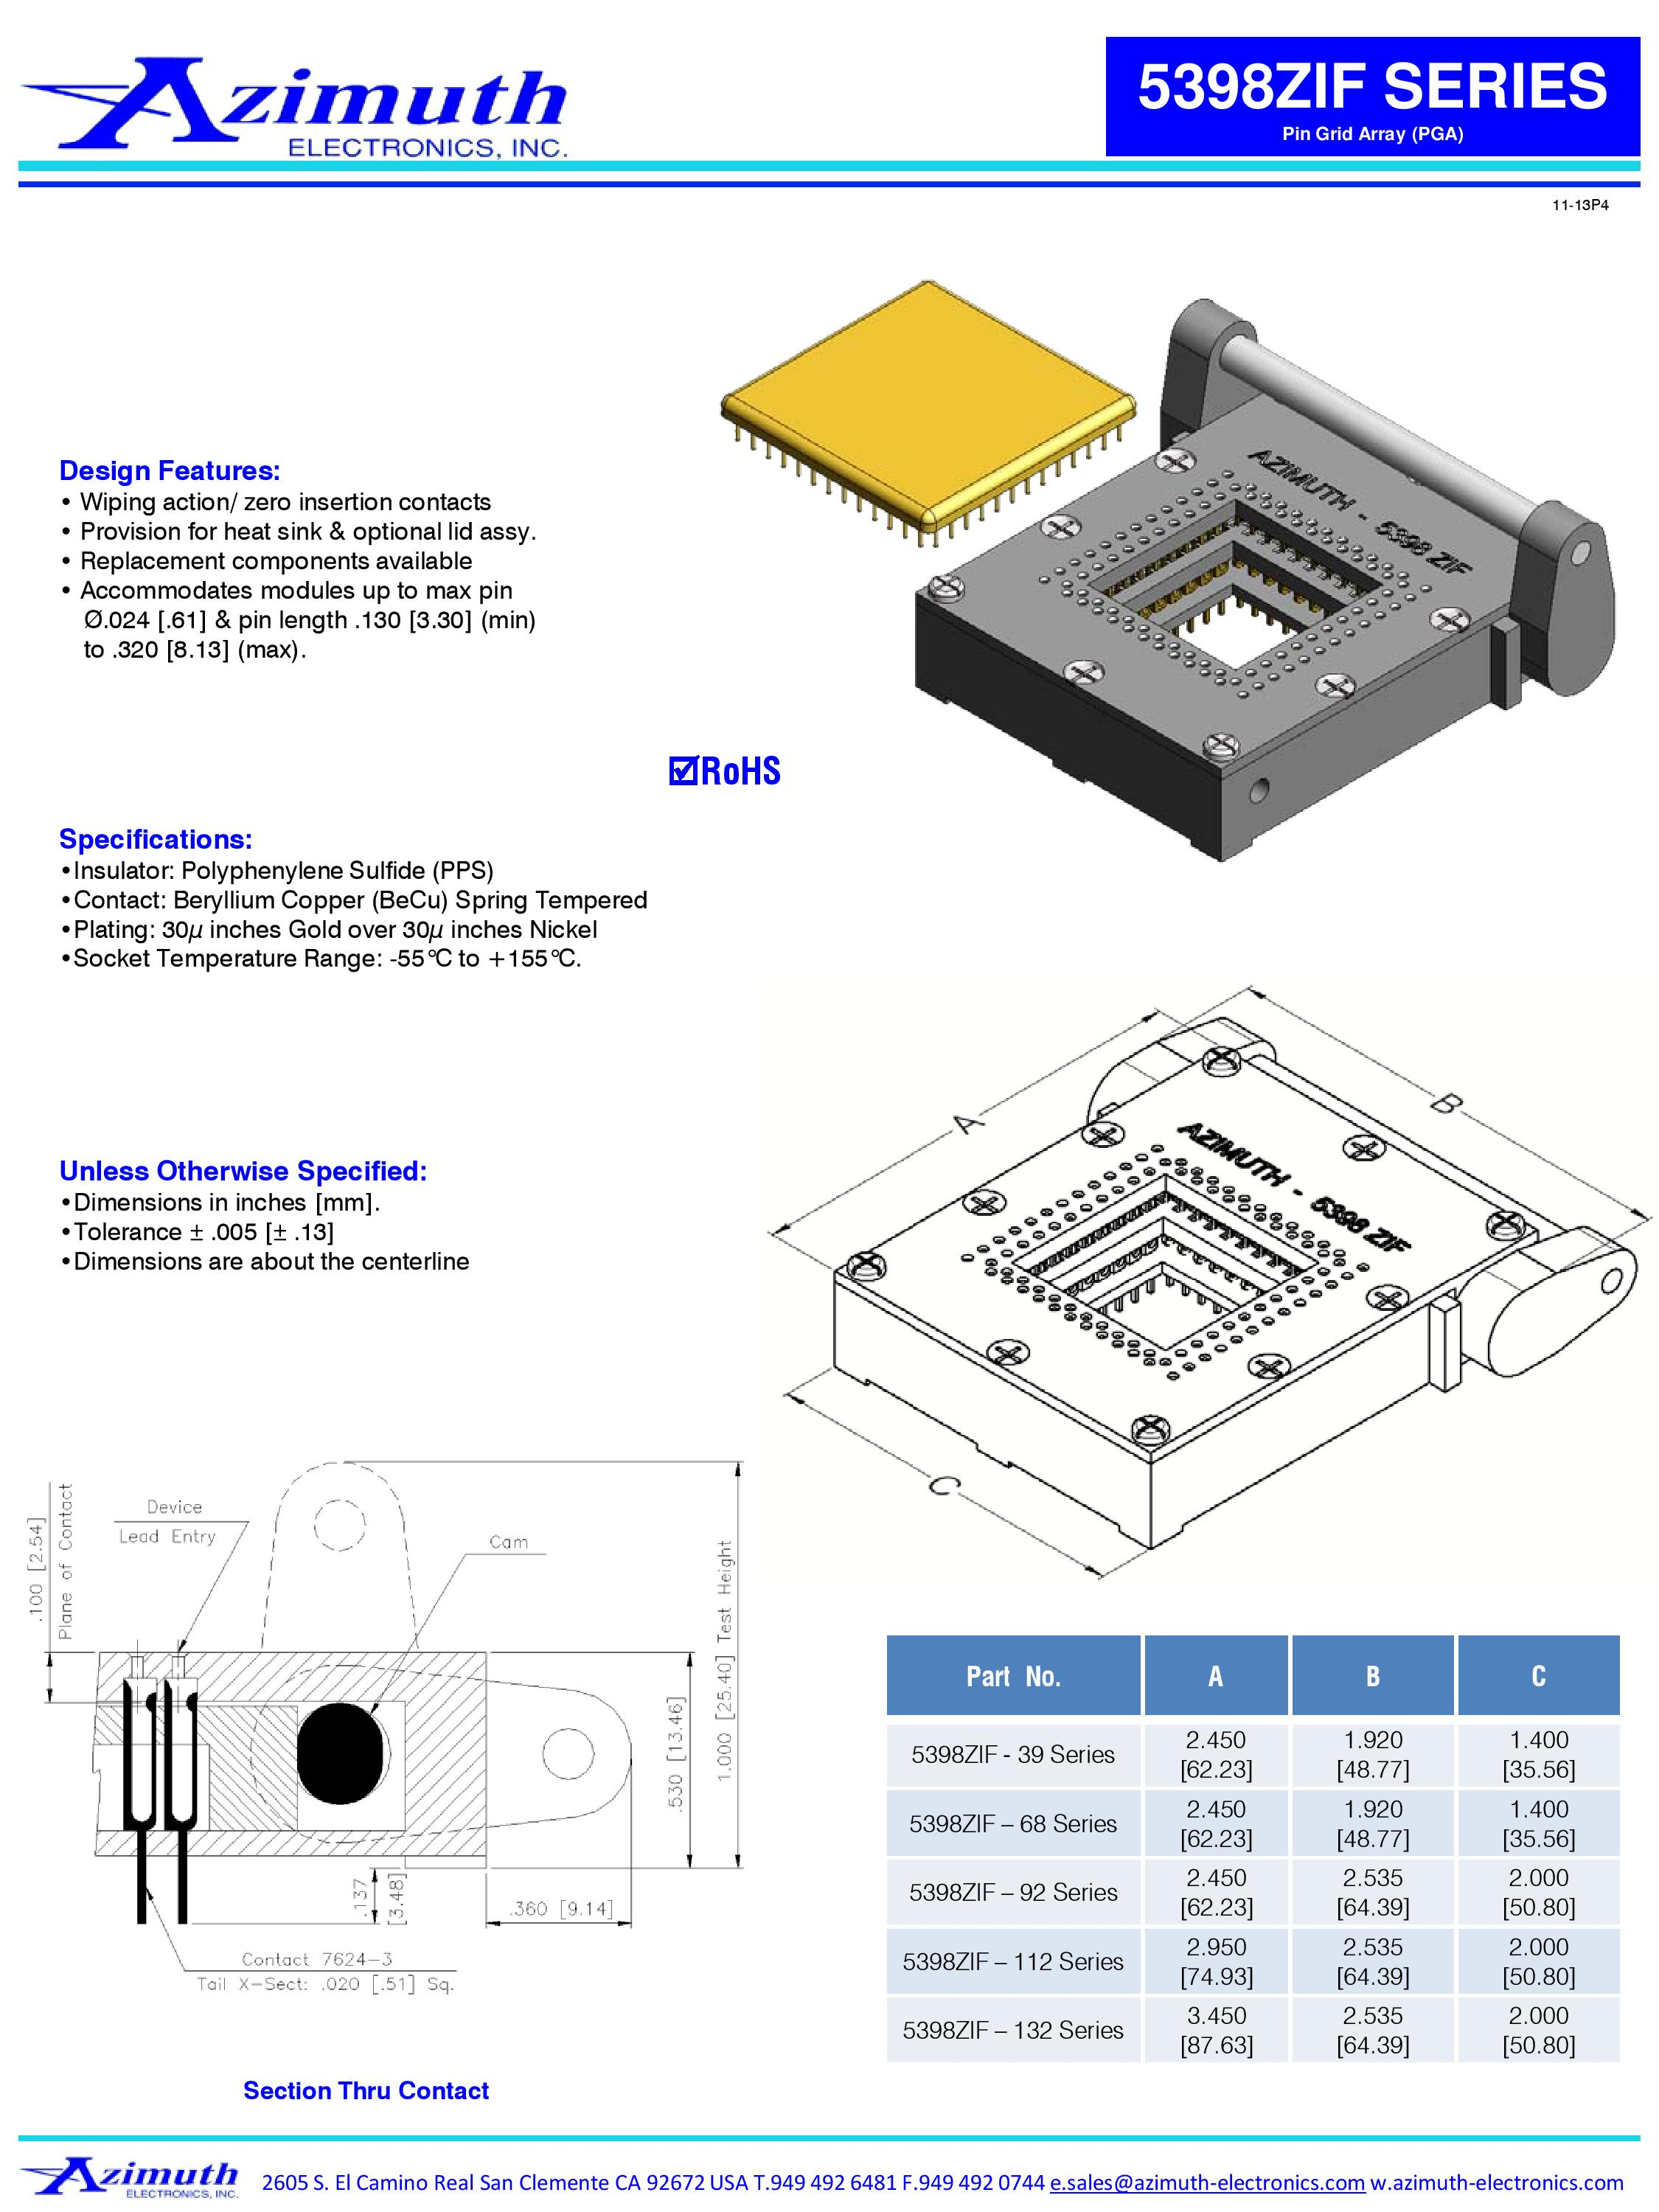 P4 - 5398ZIF-page-001.jpg